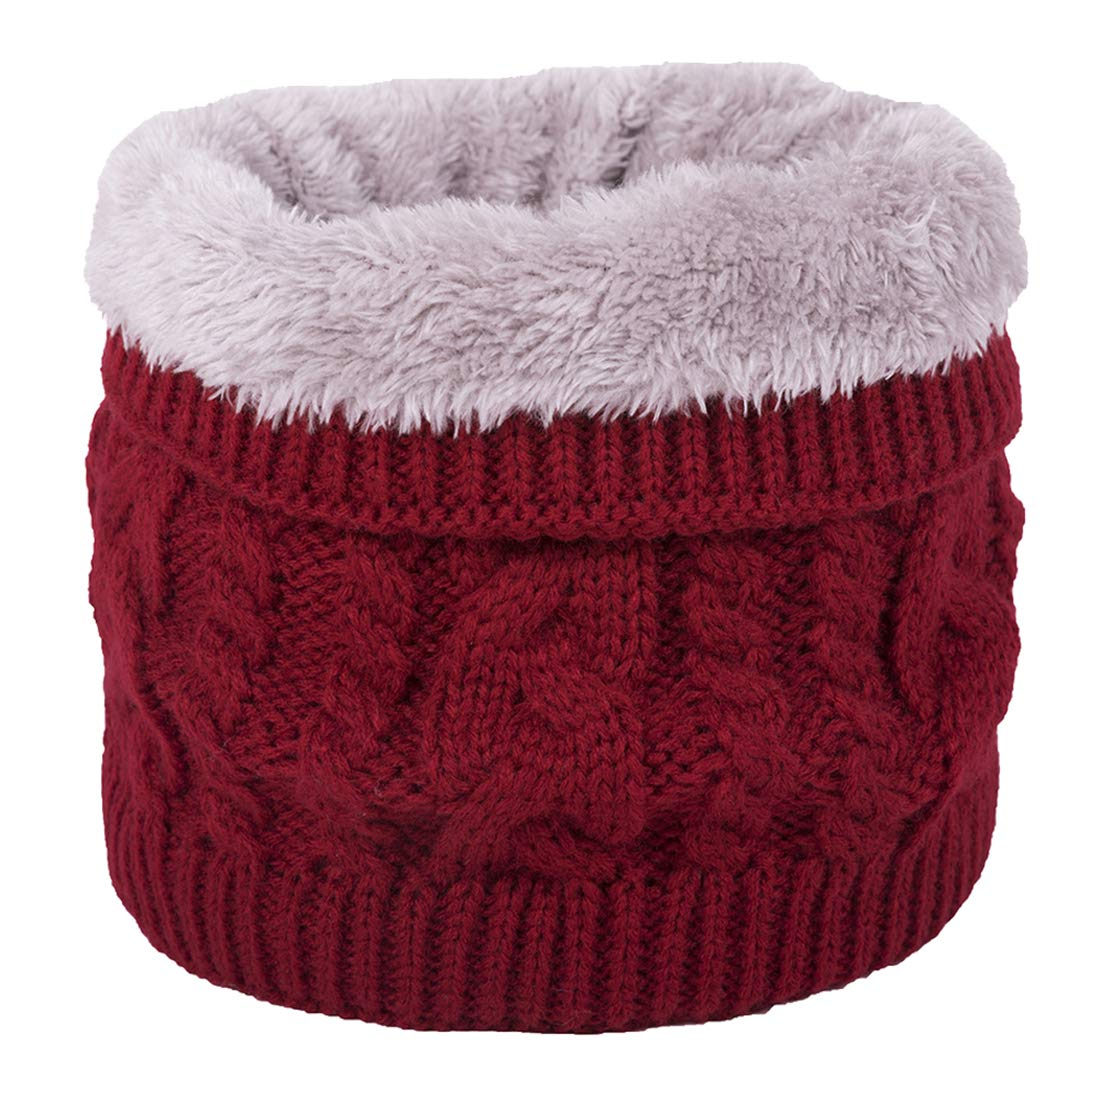 Bonvince Harsh Winter Double-Layer Soft Fleece Lined Thick Knit Neck Warmer Circle Scarf Windproof